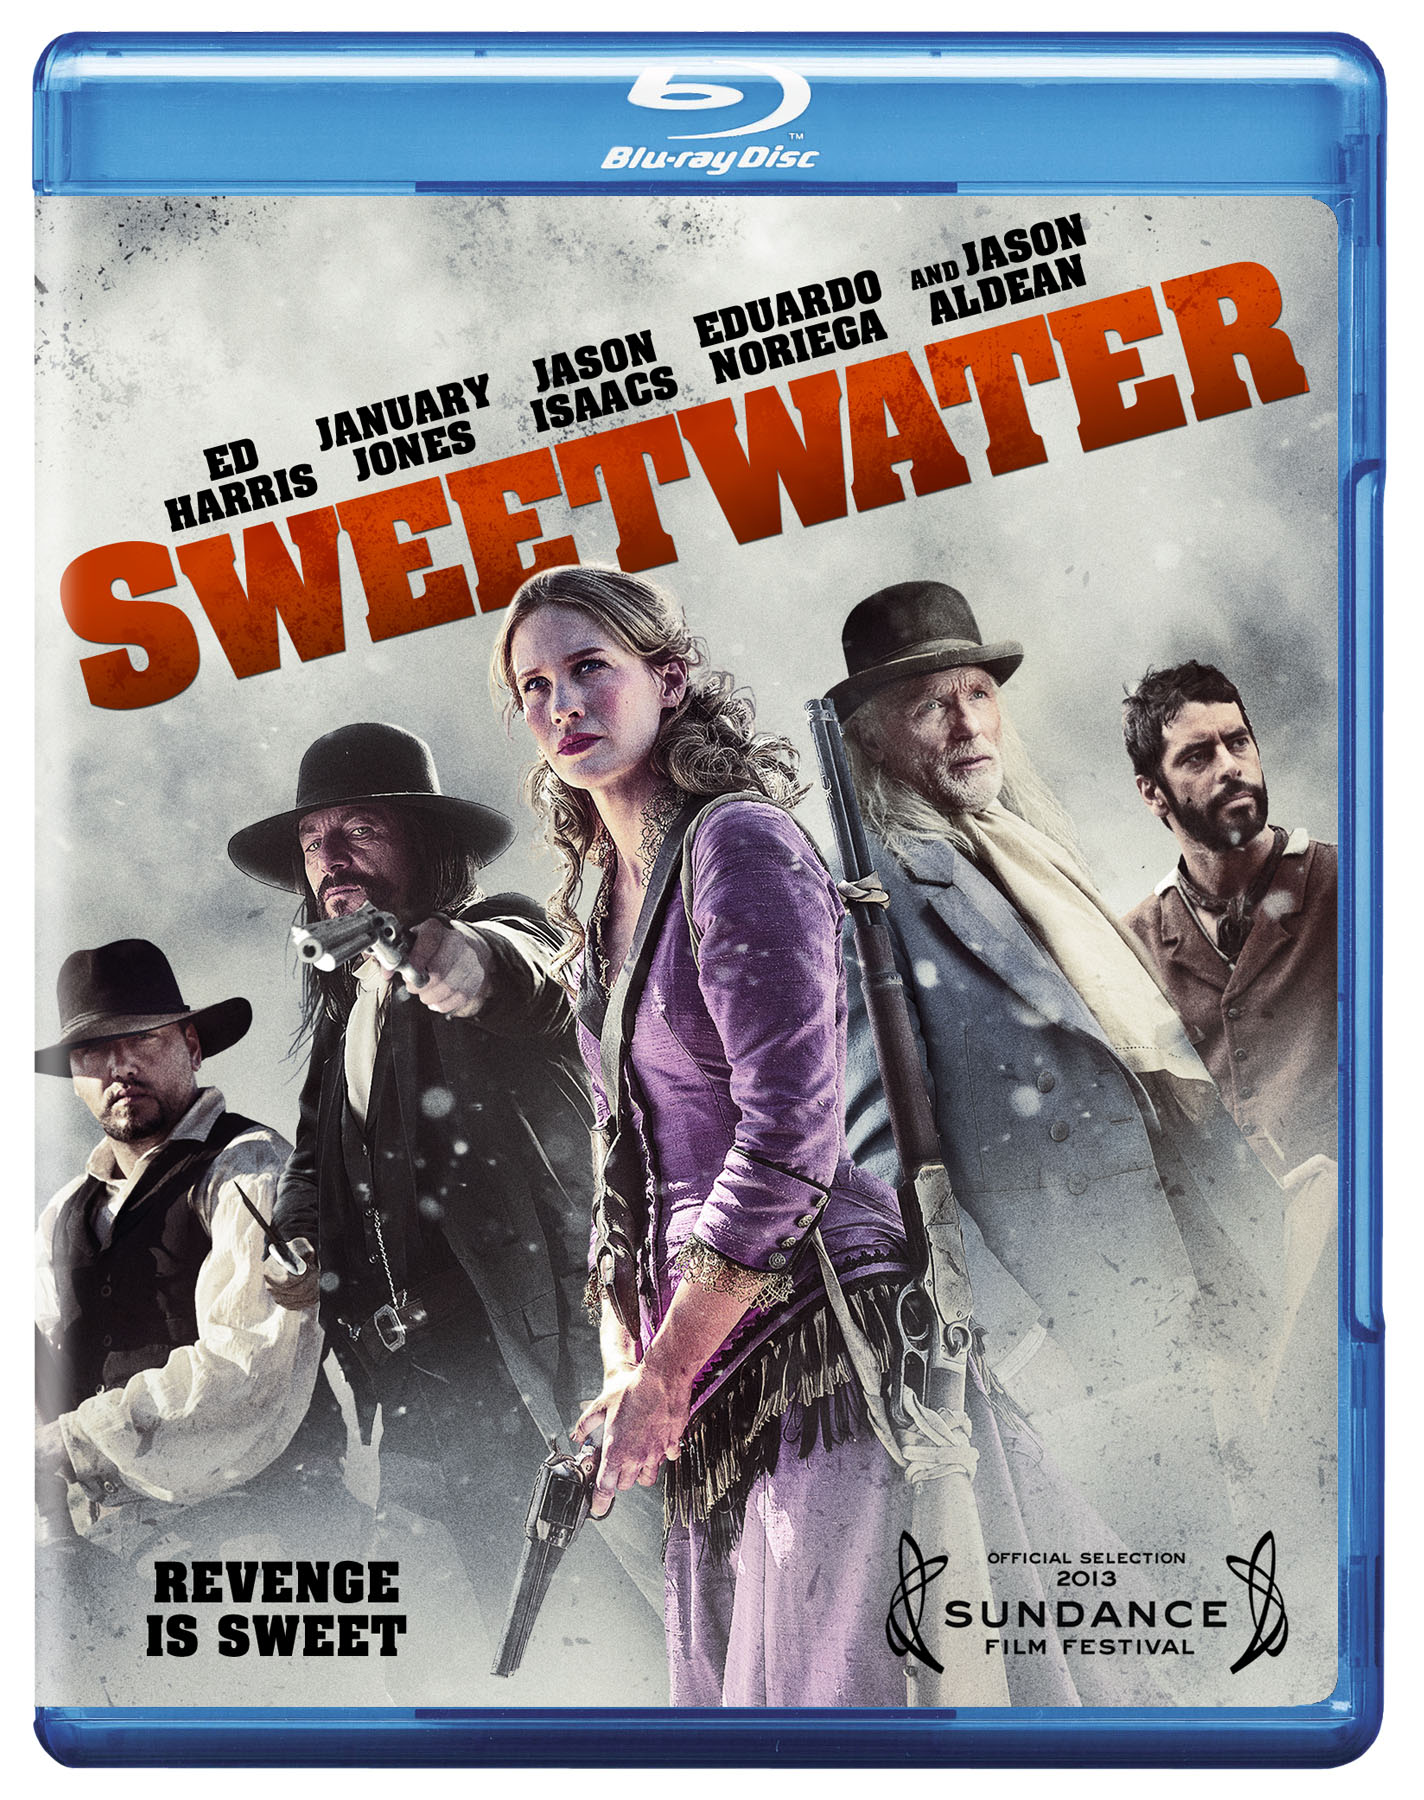 SWEETWATER 2D BD 1 Sweetwater Drickles Into Homes with Blu ray and DVD Releases